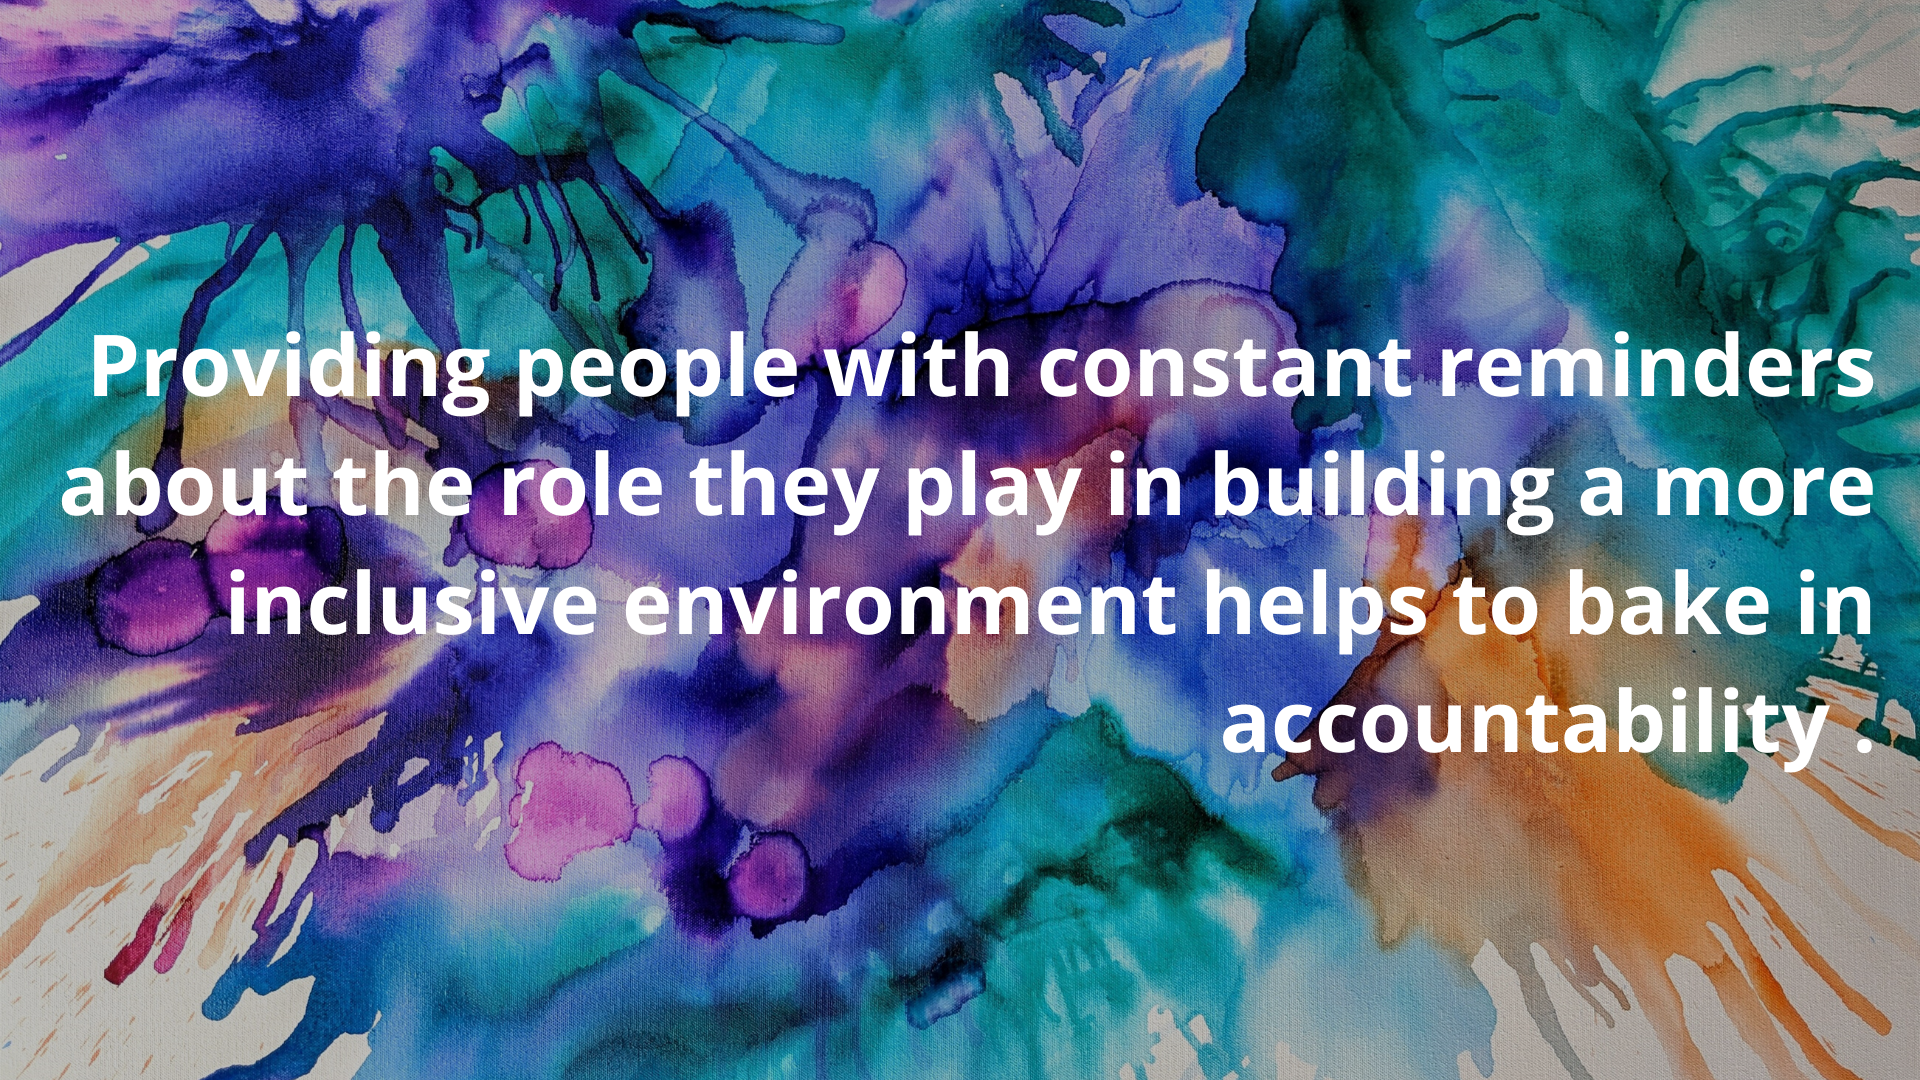 Providing people with constant reminders about the role they play in building a more inclusive environment helps to bake in accountability.